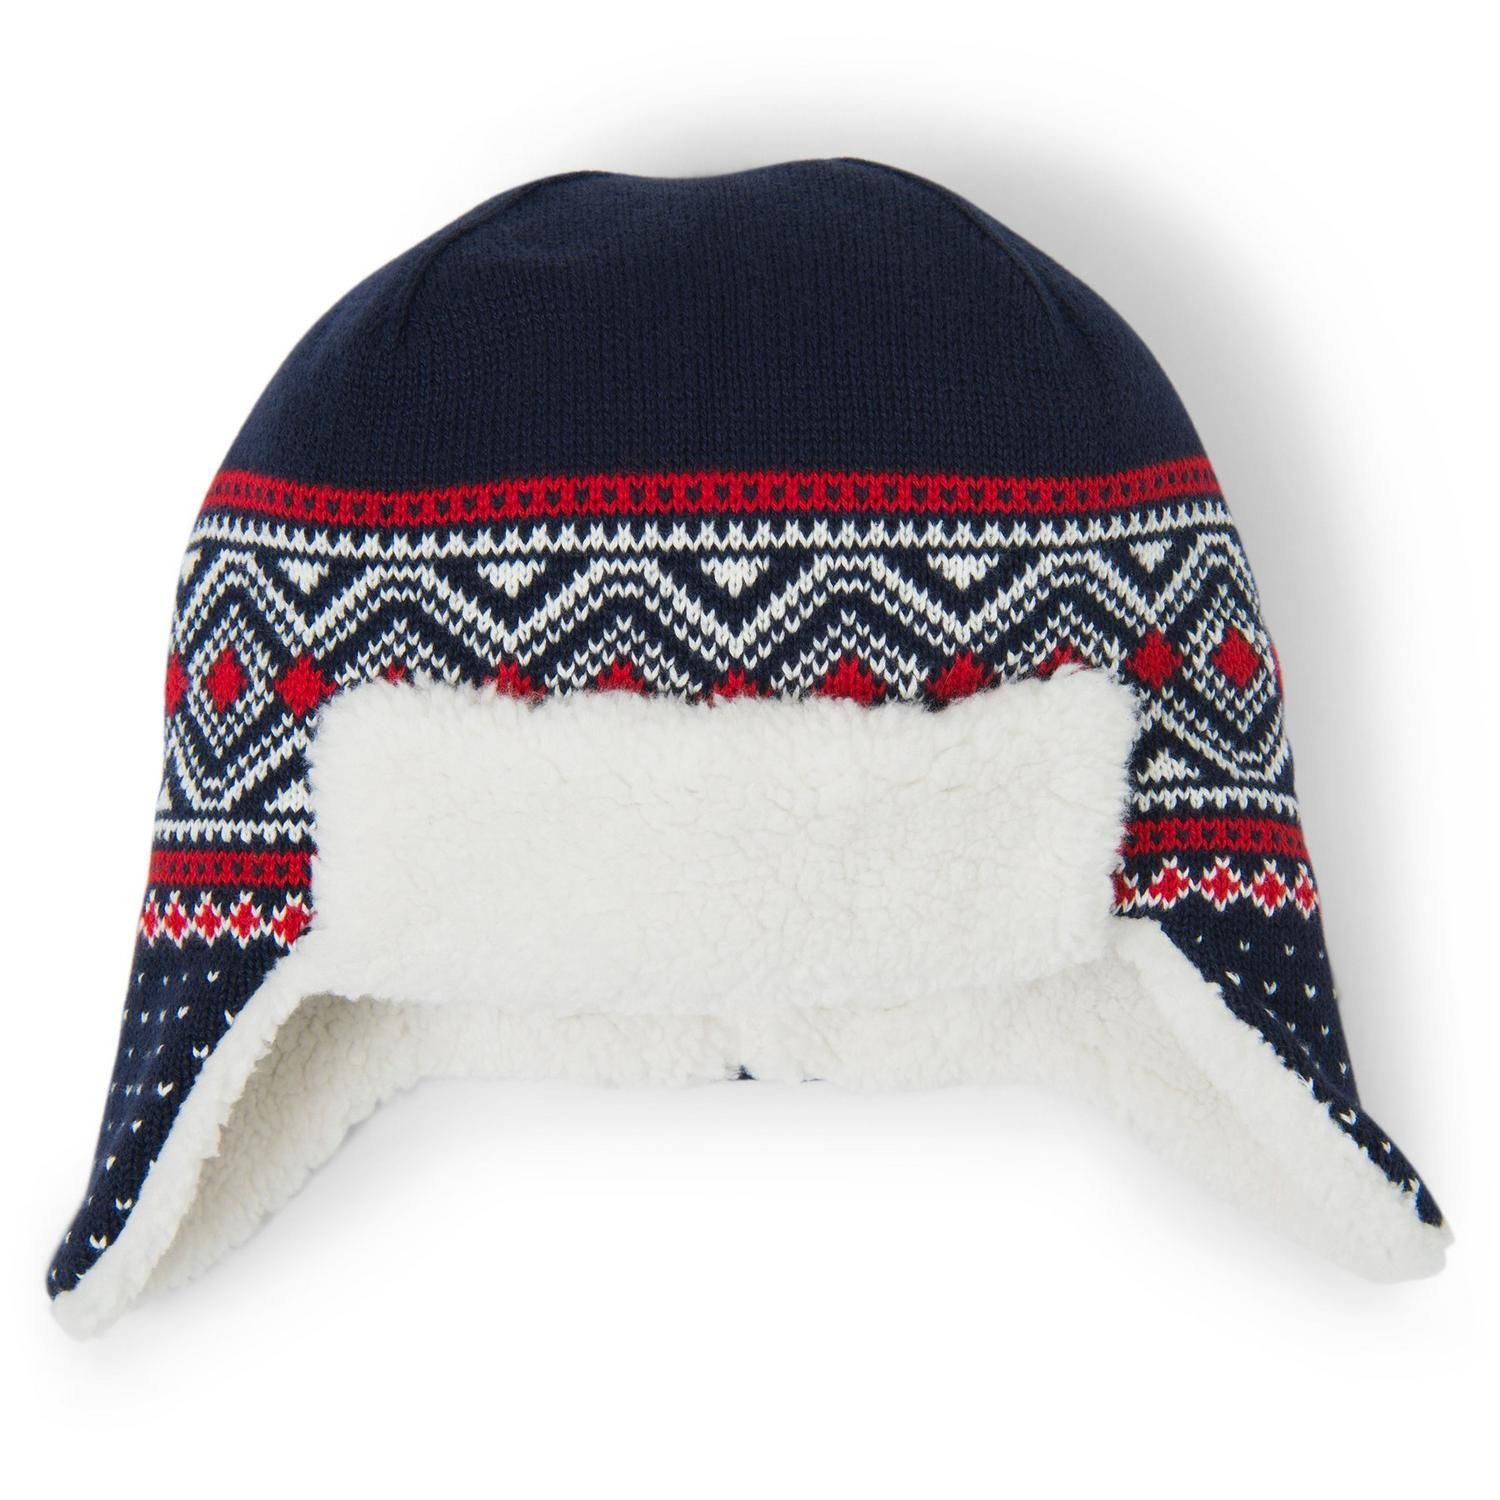 8694d853d97 Accessories Navy Fair Isle Sherpa Lined Fair Isle Hat by Janie and Jack